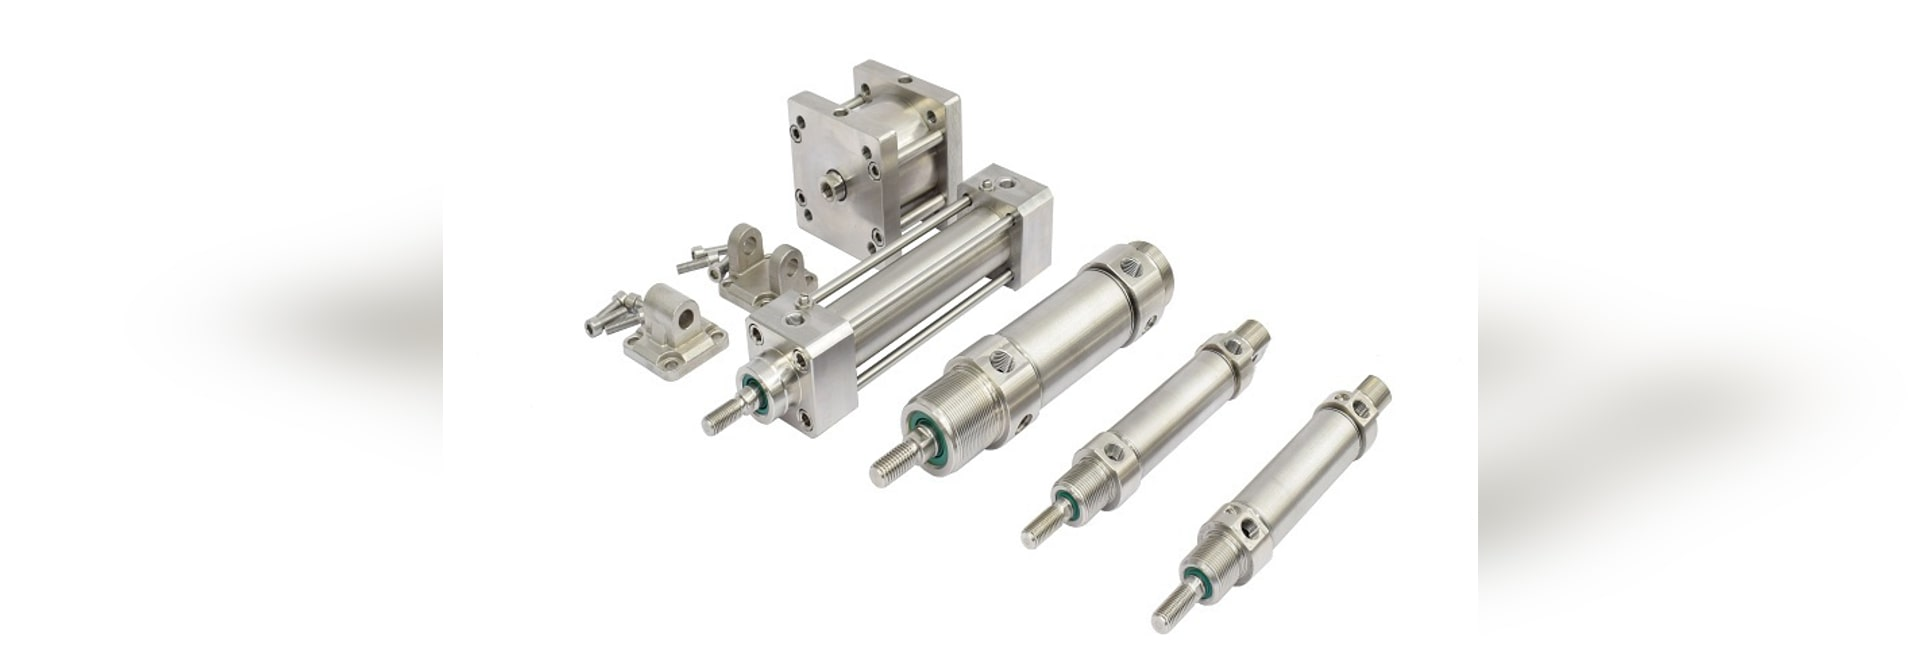 Pneumatic cylinders for food industry